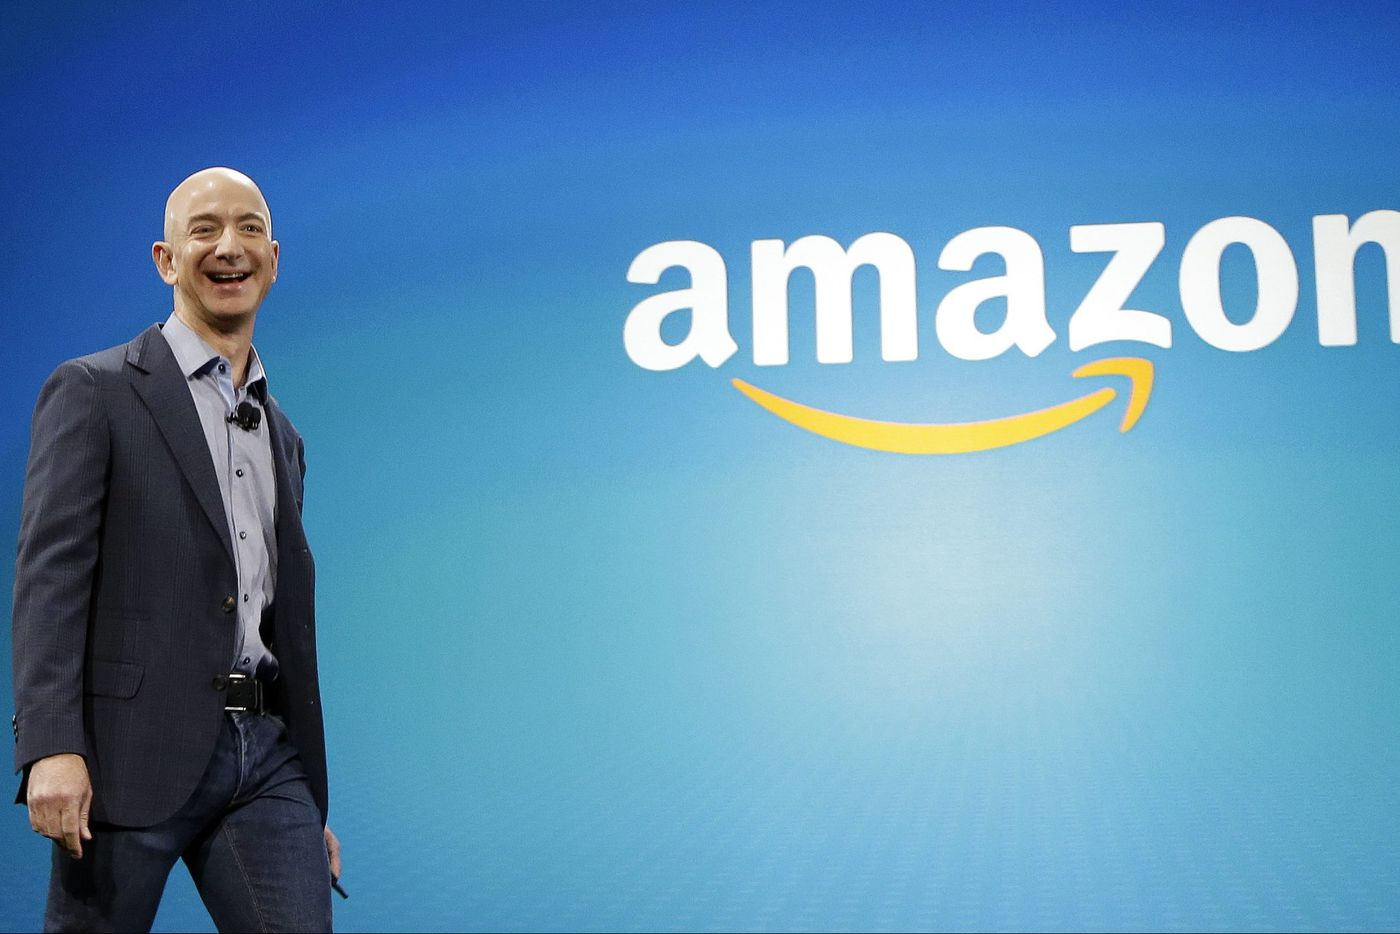 Jeff Bezos launches $2 billion fund for homeless